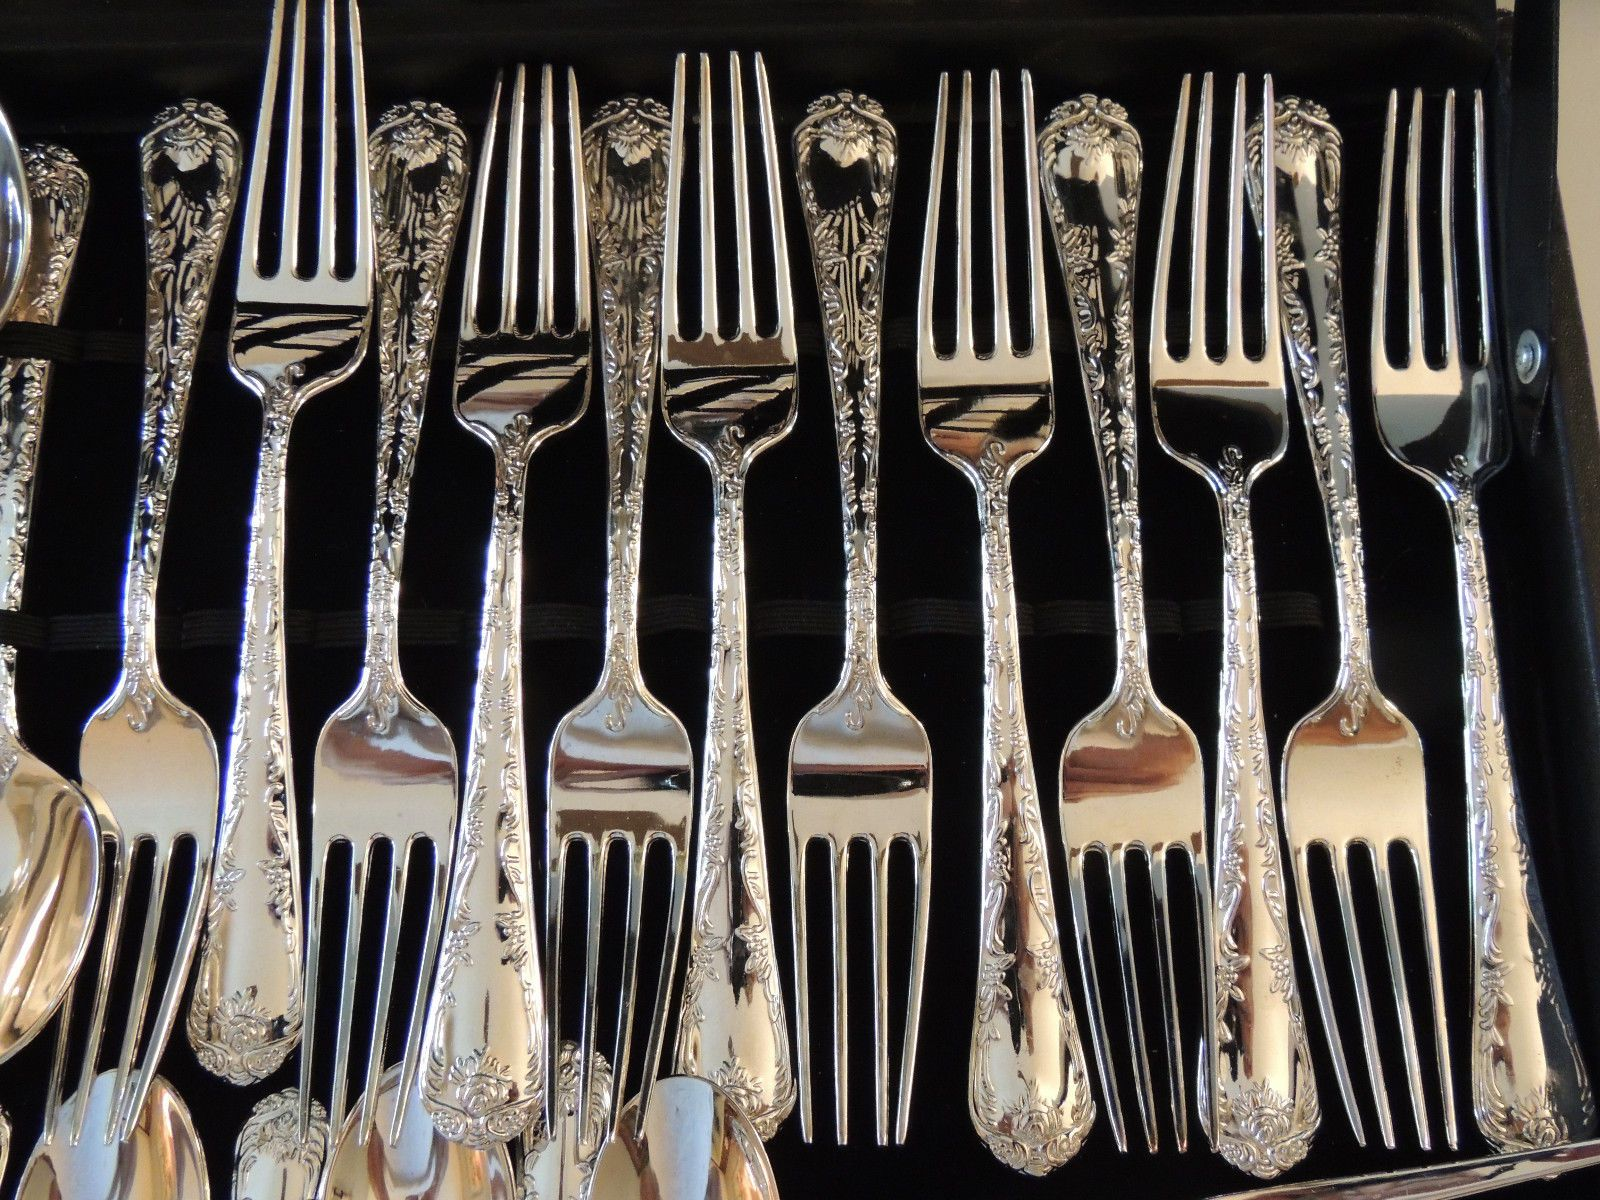 Wm Rogers Son China Silver Plated Flatware 50 Piece Set